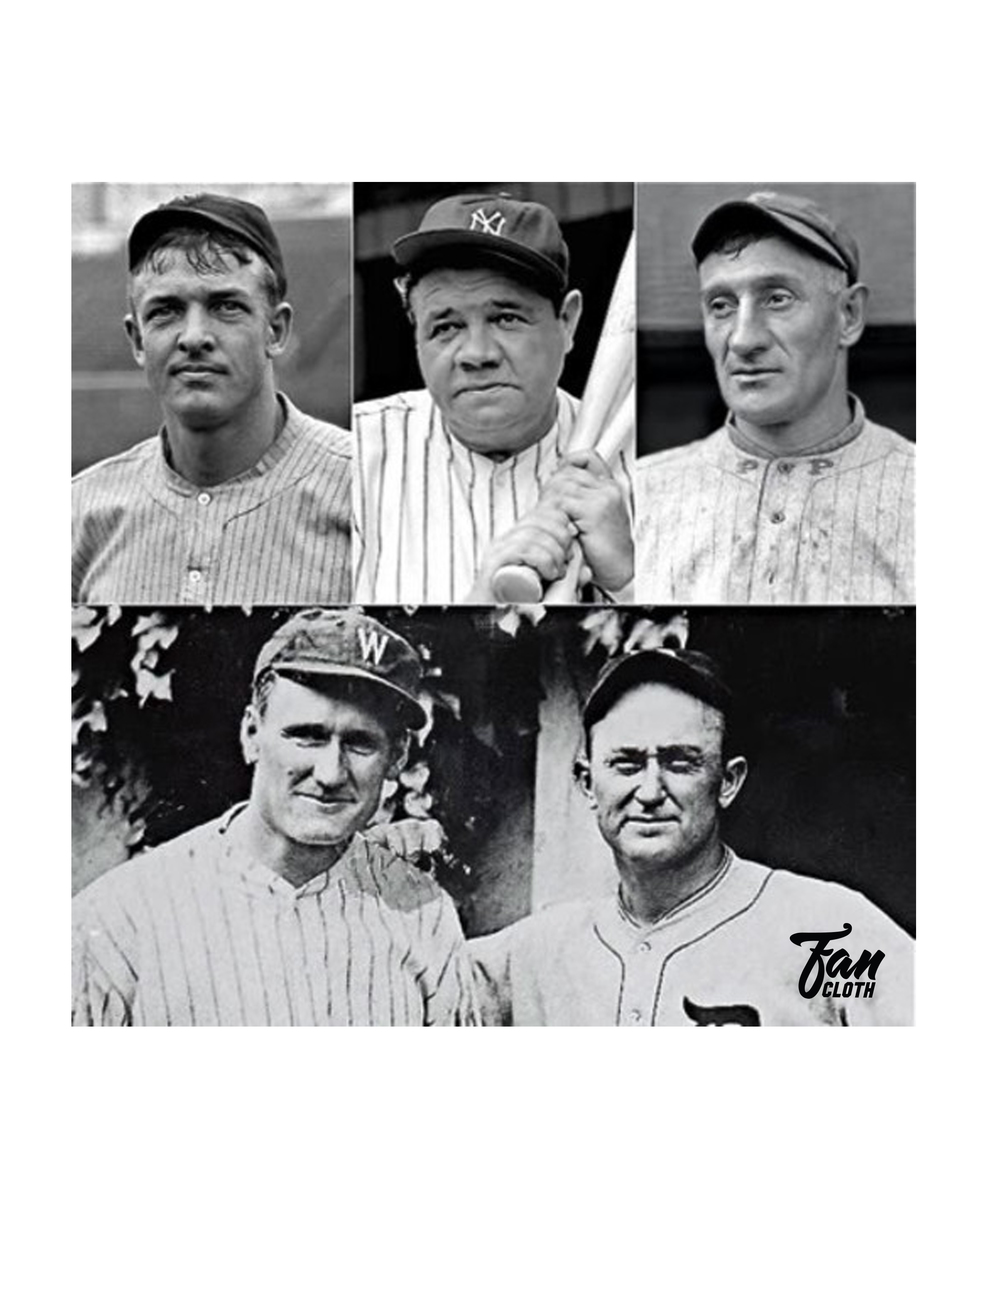 """""""Cerebral Sports has started thinking about Baseball now that most MLB teams are holding their annual fan conventions. Mock drafts are always so much fun so we have decided to take every player in baseball history and broke them down into 4 different teams after a comprehensive draft. Teams will have a total roster of only 14 players. The basis is pretty simple teams can choose 4 man rotations combined with a closer. And yes ladies and gentleman the designated hitter (DH) will be used. So lets look to see who has the best team on paper"""" see morecerebralsports.sportsblog"""